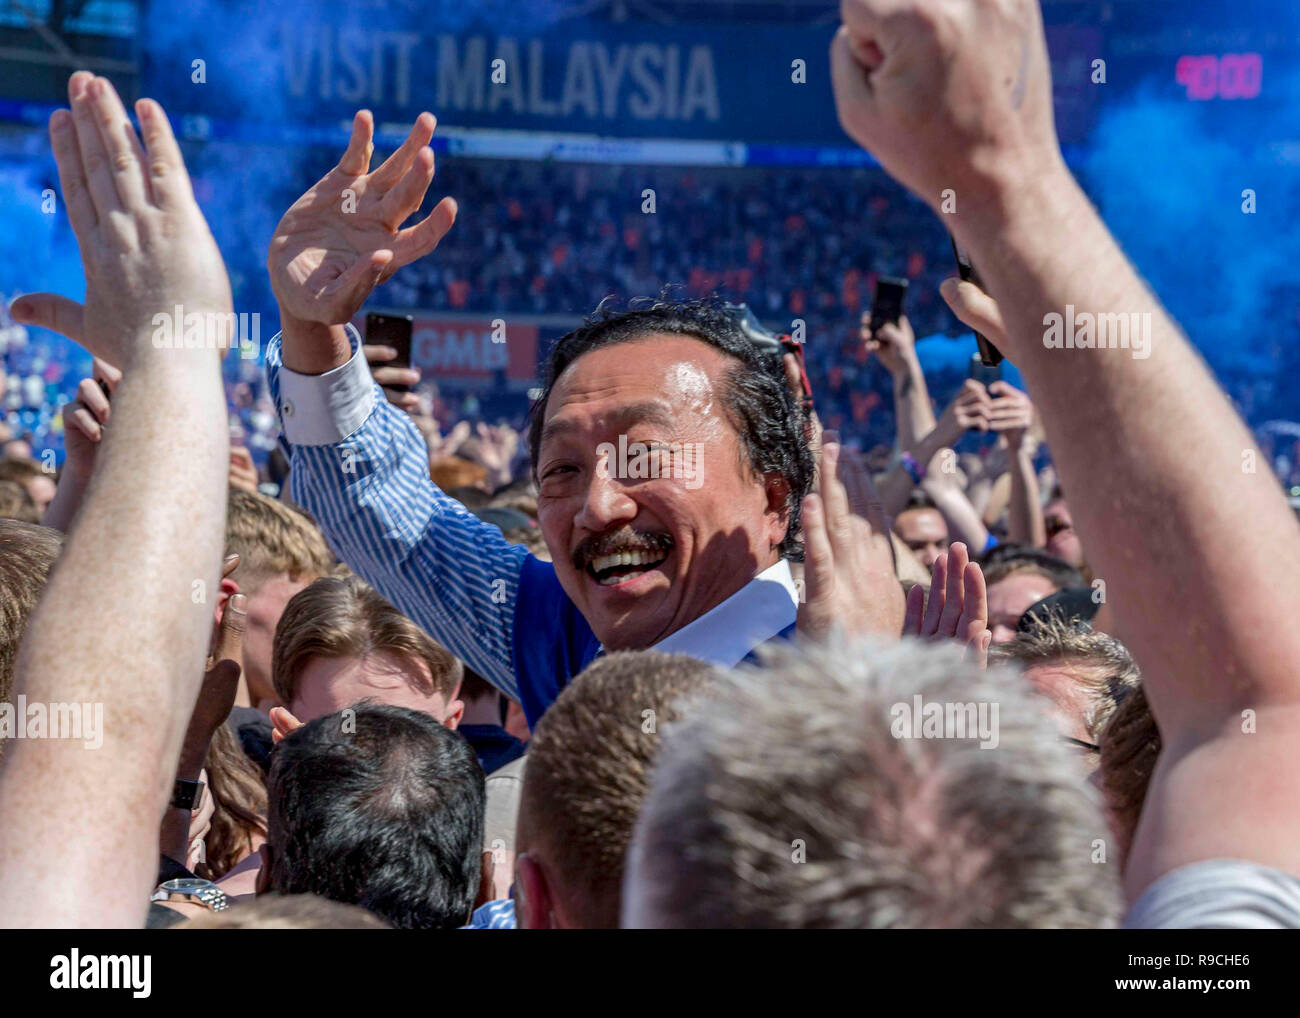 CARDIFF, UNITED KINGDOM. 06 May 2018. Cardiff City FC owner Vincent Tan participating in a pitch invasion after his side earned league promotion. - Stock Image